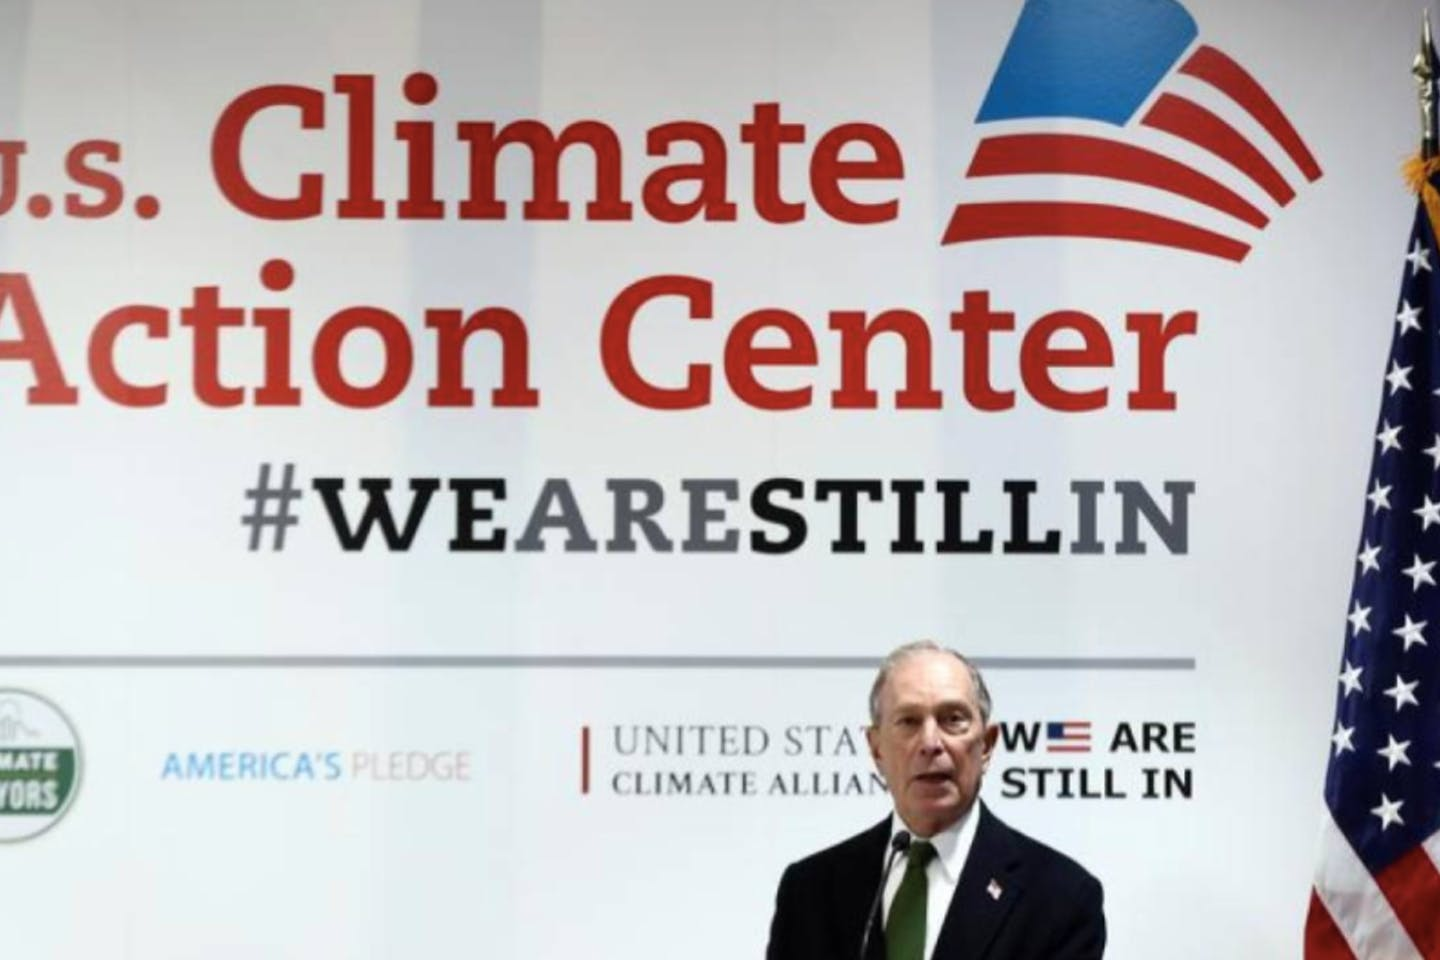 Michael Bloomberg speaks during a panel at the UN Climate Change Conference (COP25)